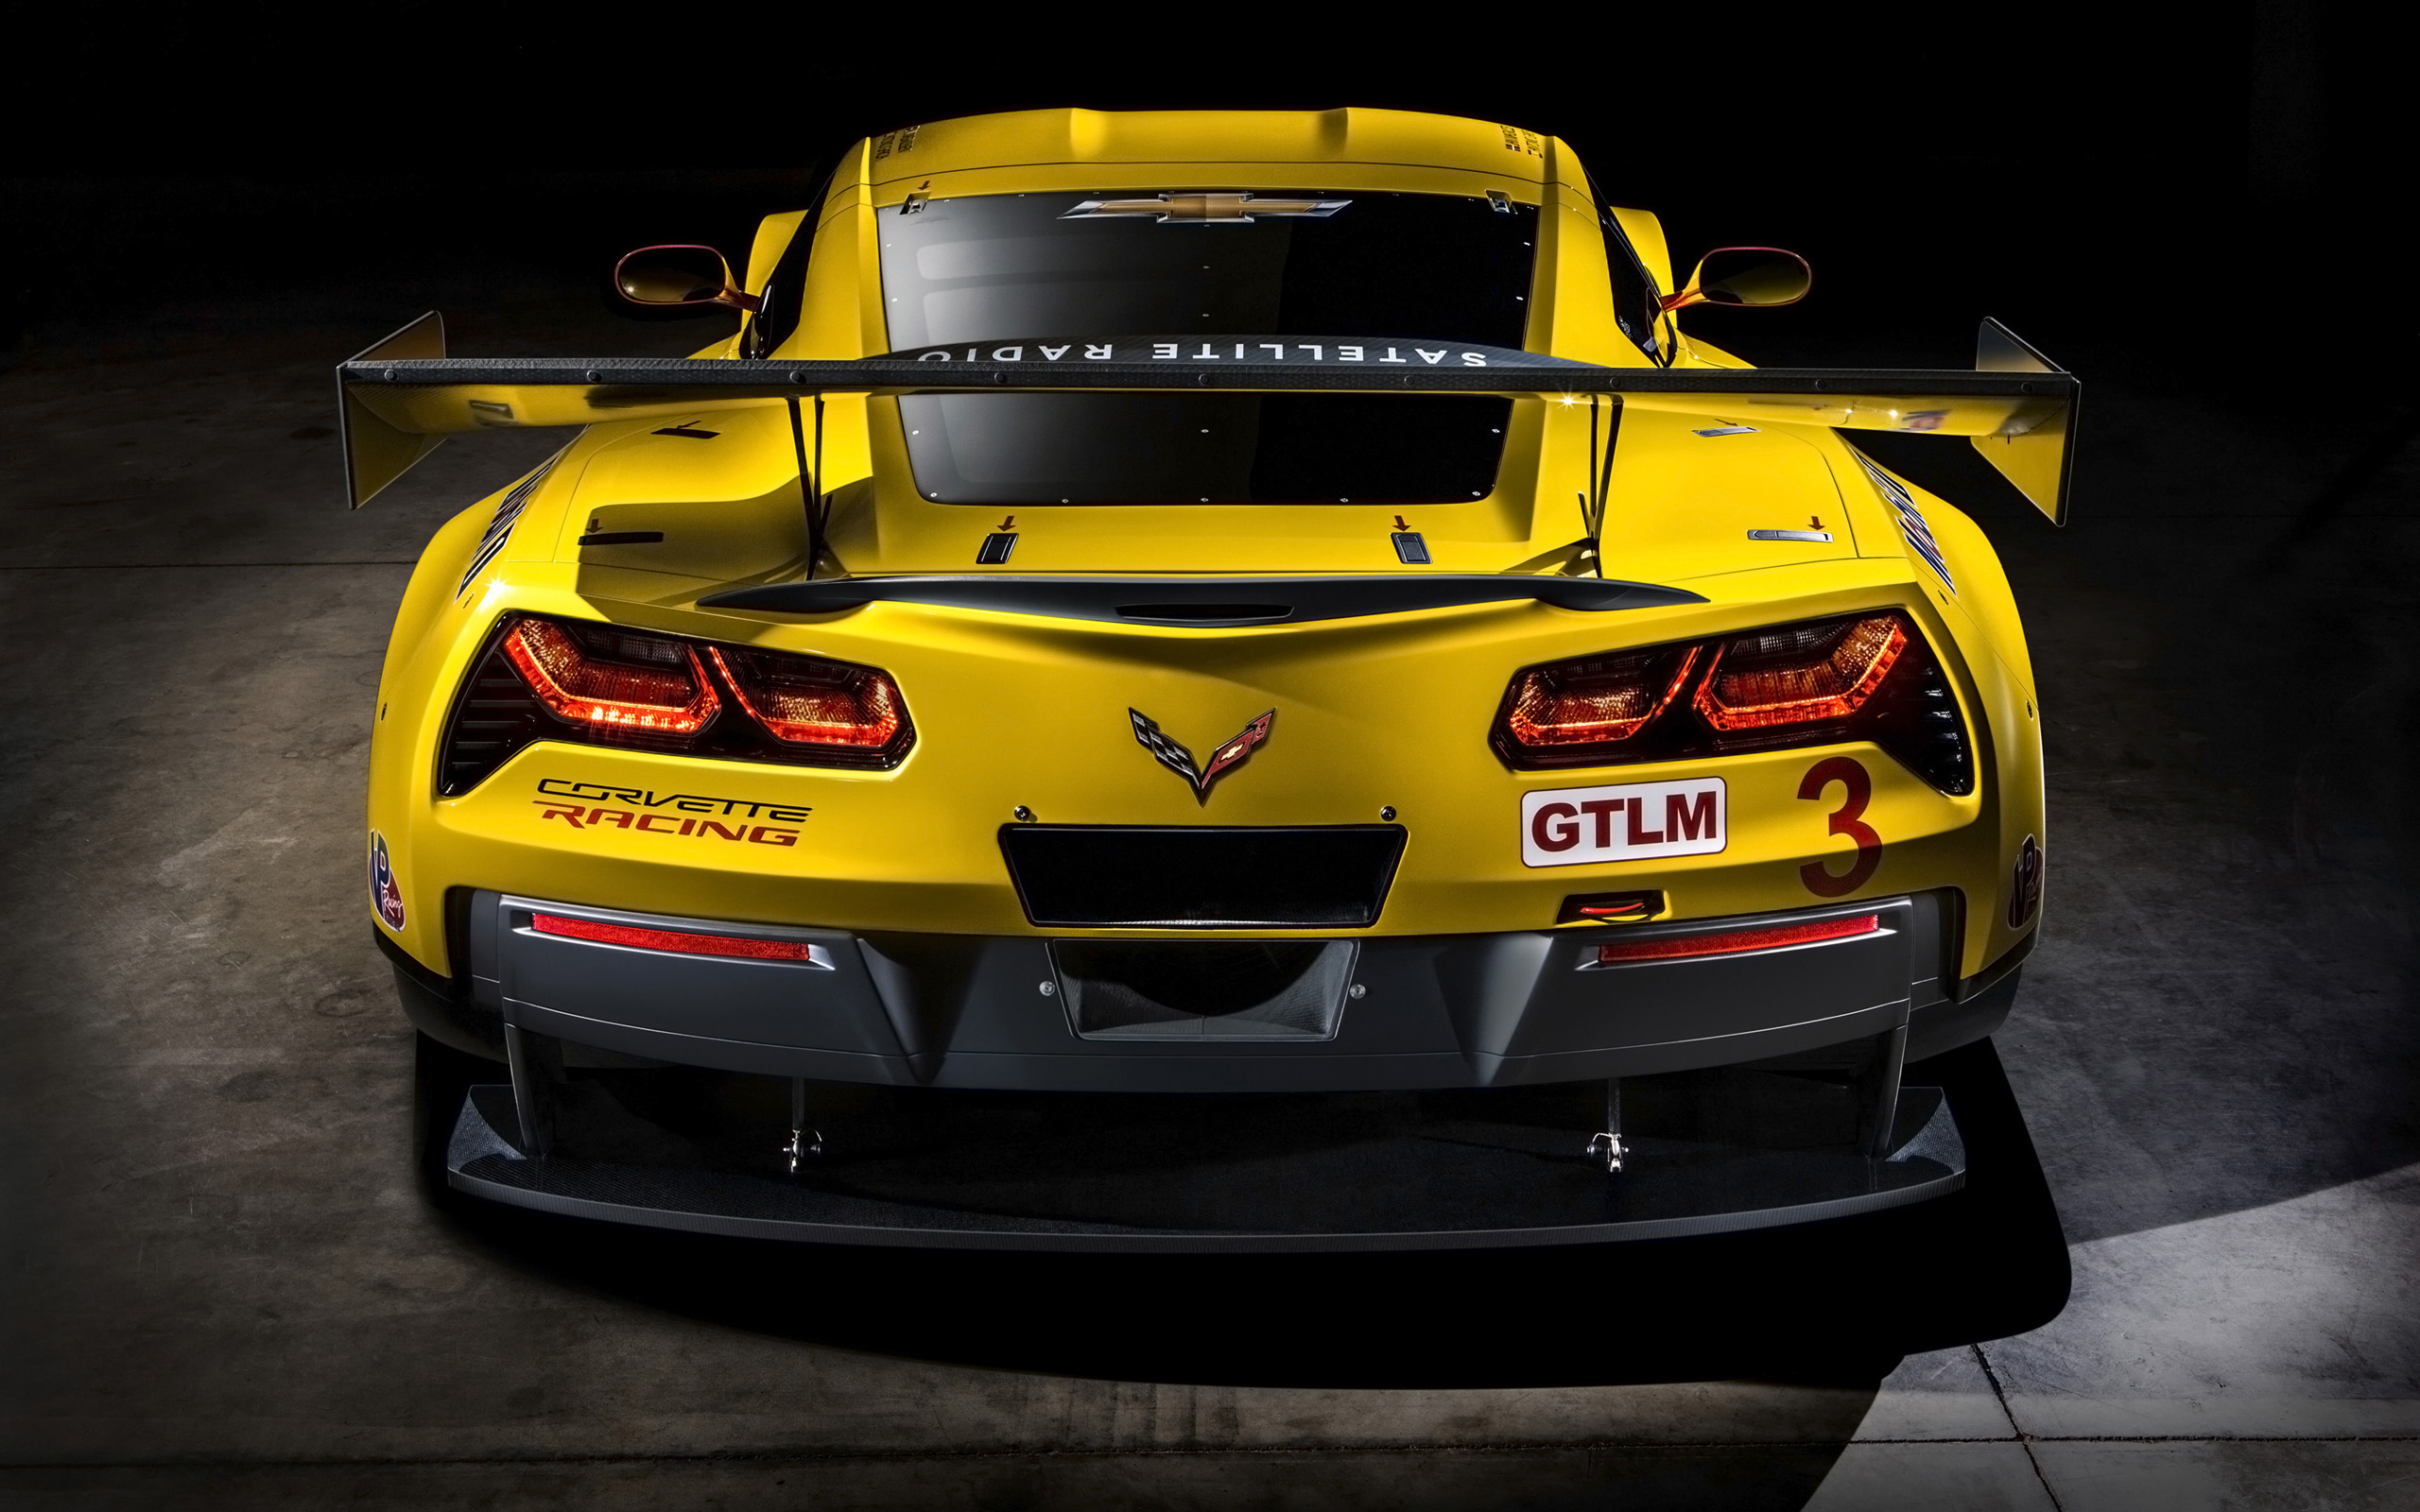 Chevrolet Corvette C7 R 2014 2 Wallpaper HD Car Wallpapers 2560x1600